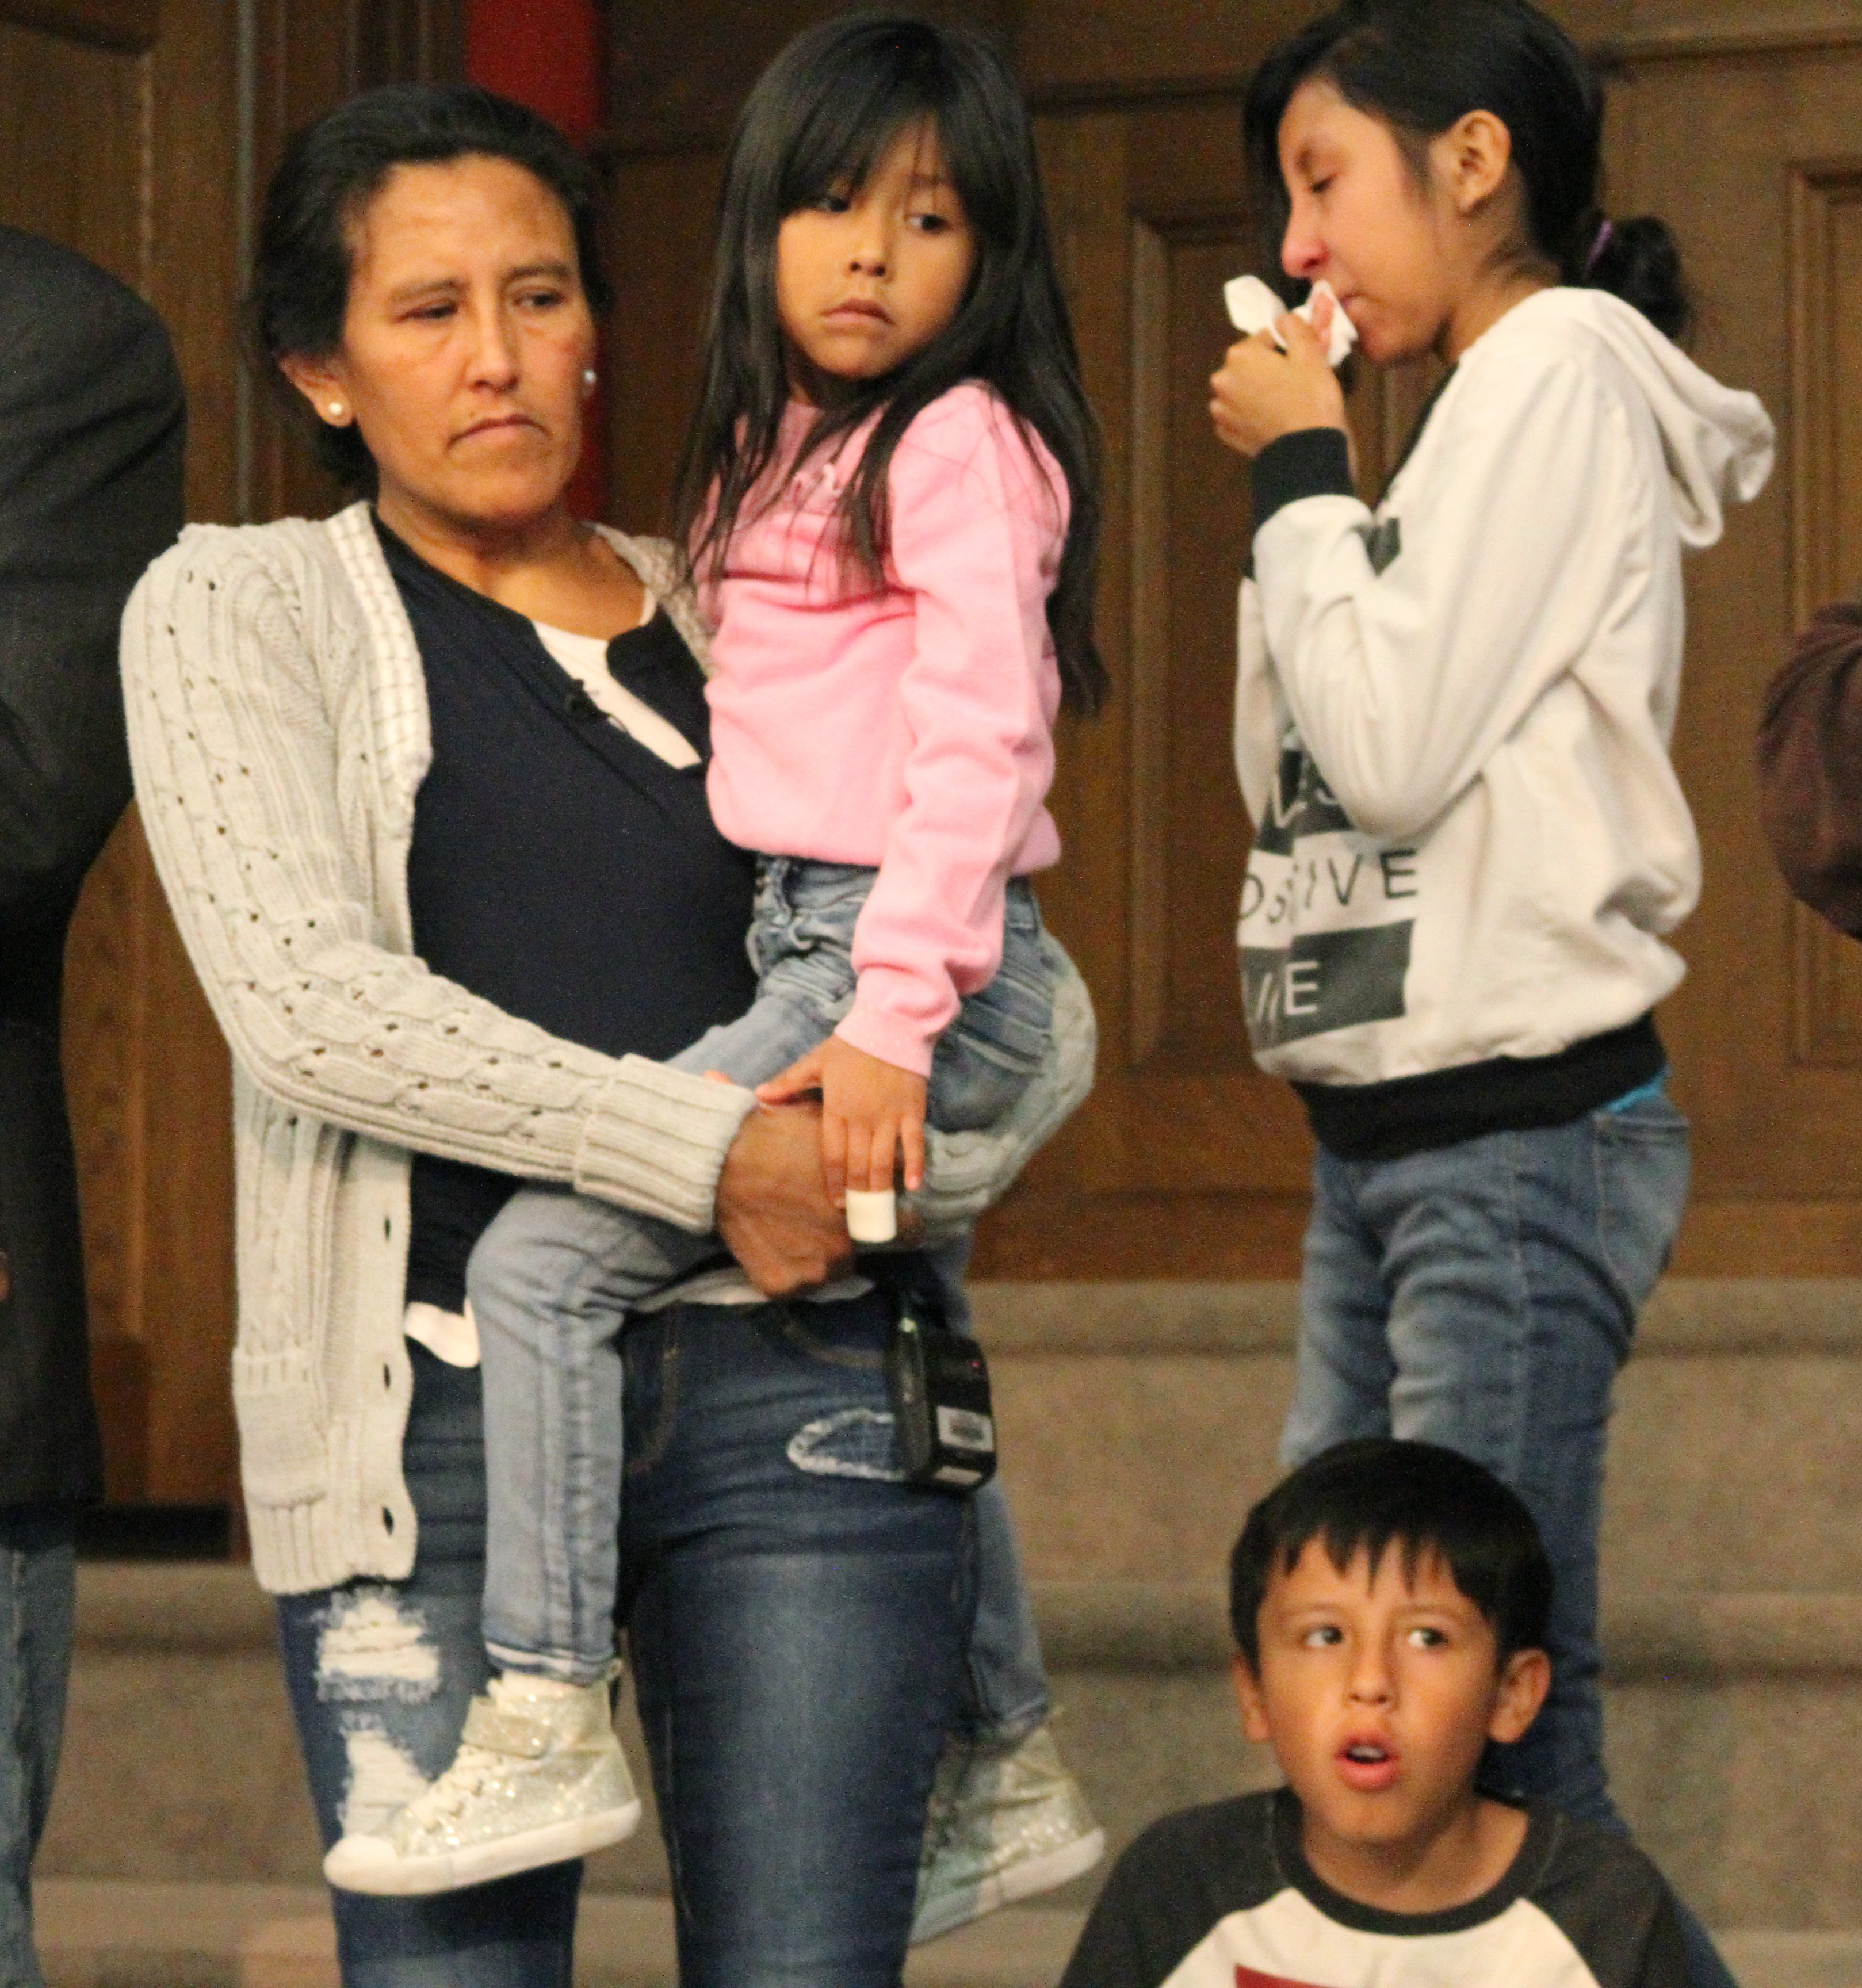 Undocumented mother of 3 US citizens on deportation fight ...